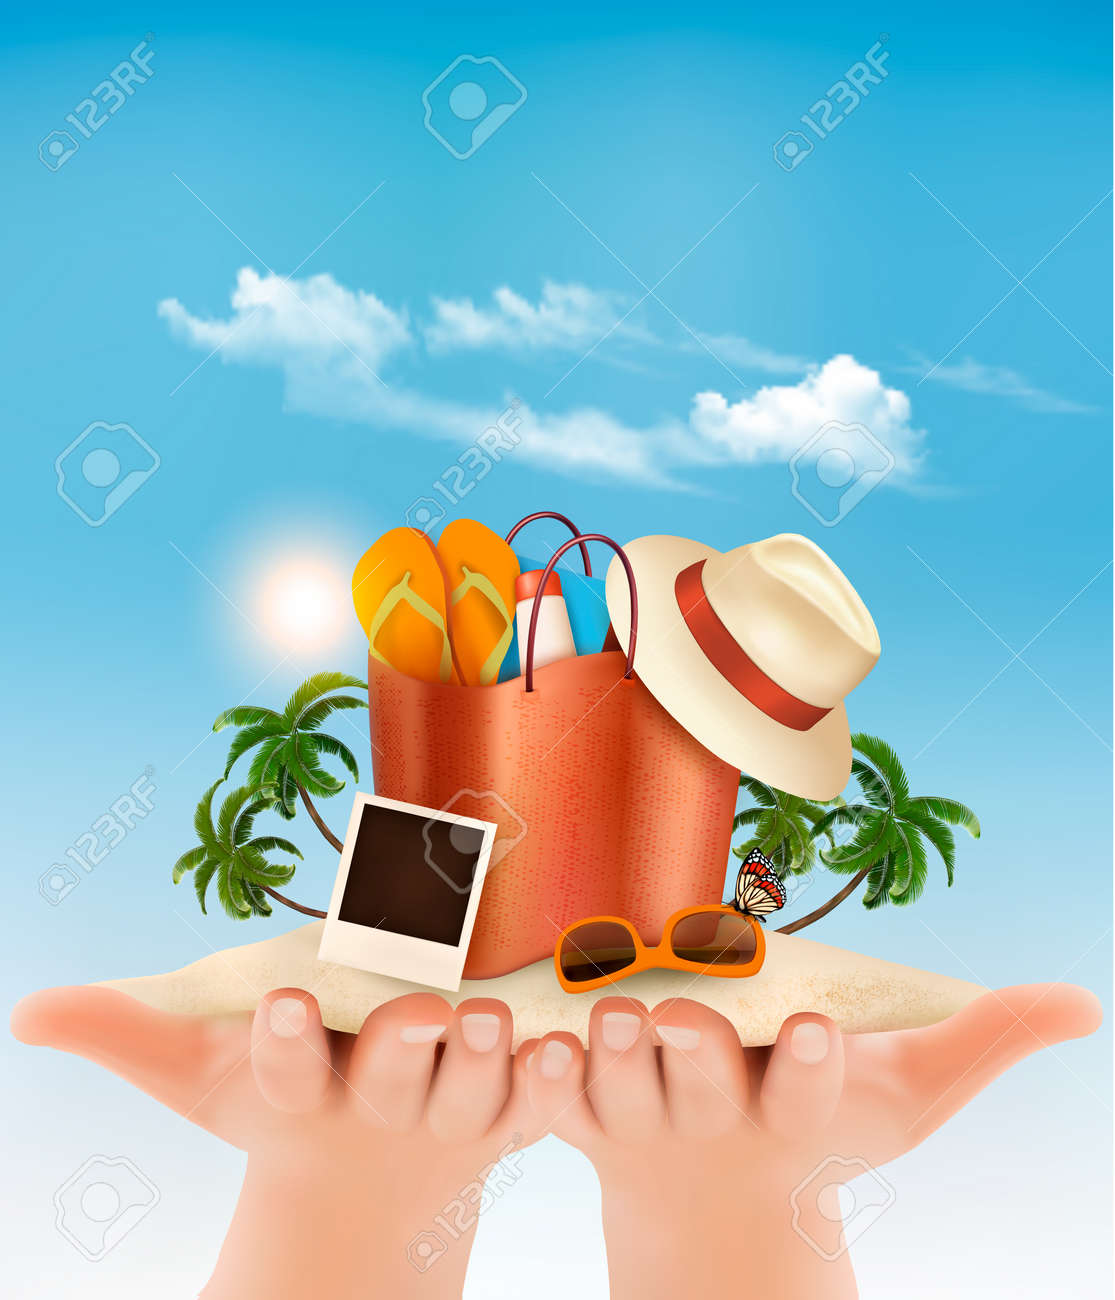 Vacation concept. Beach with a palm tree, a photograph and a beach bag in hands. - 54421609